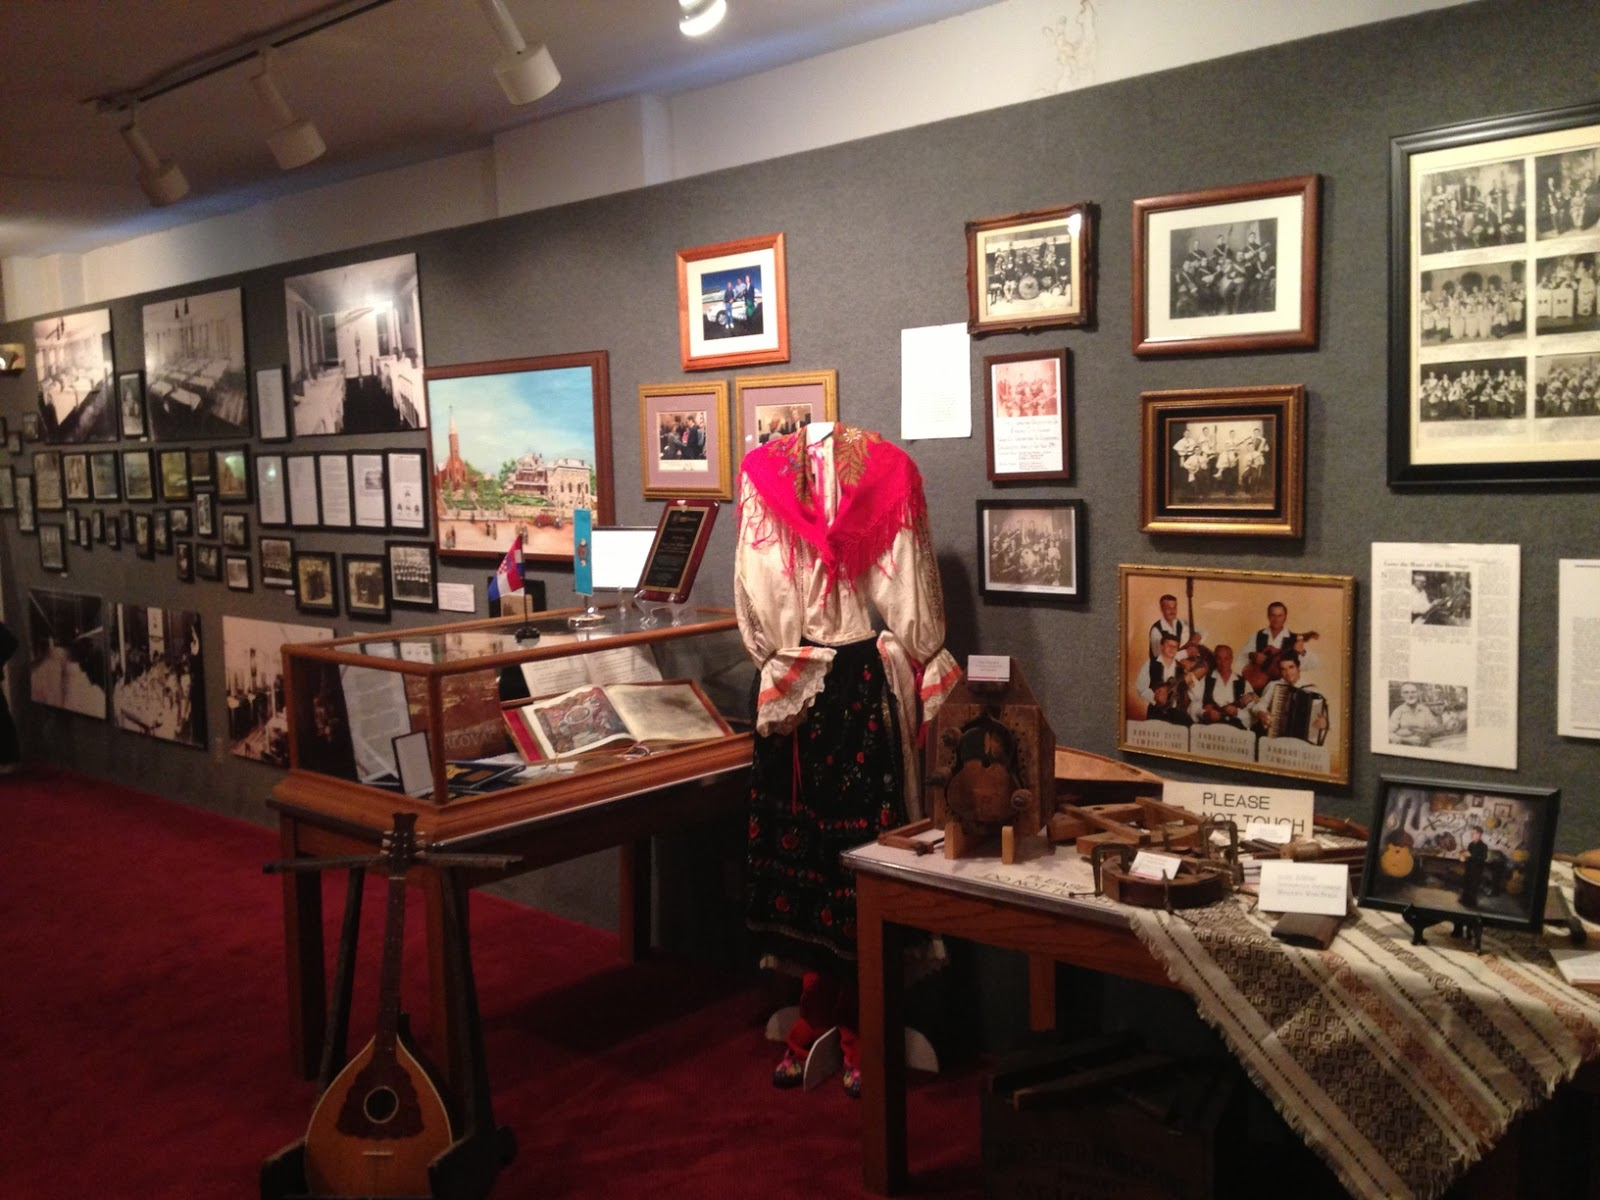 The museum has exhibits where visitors can learn about the culture and history of various Eastern European immigrant groups who lived in the area